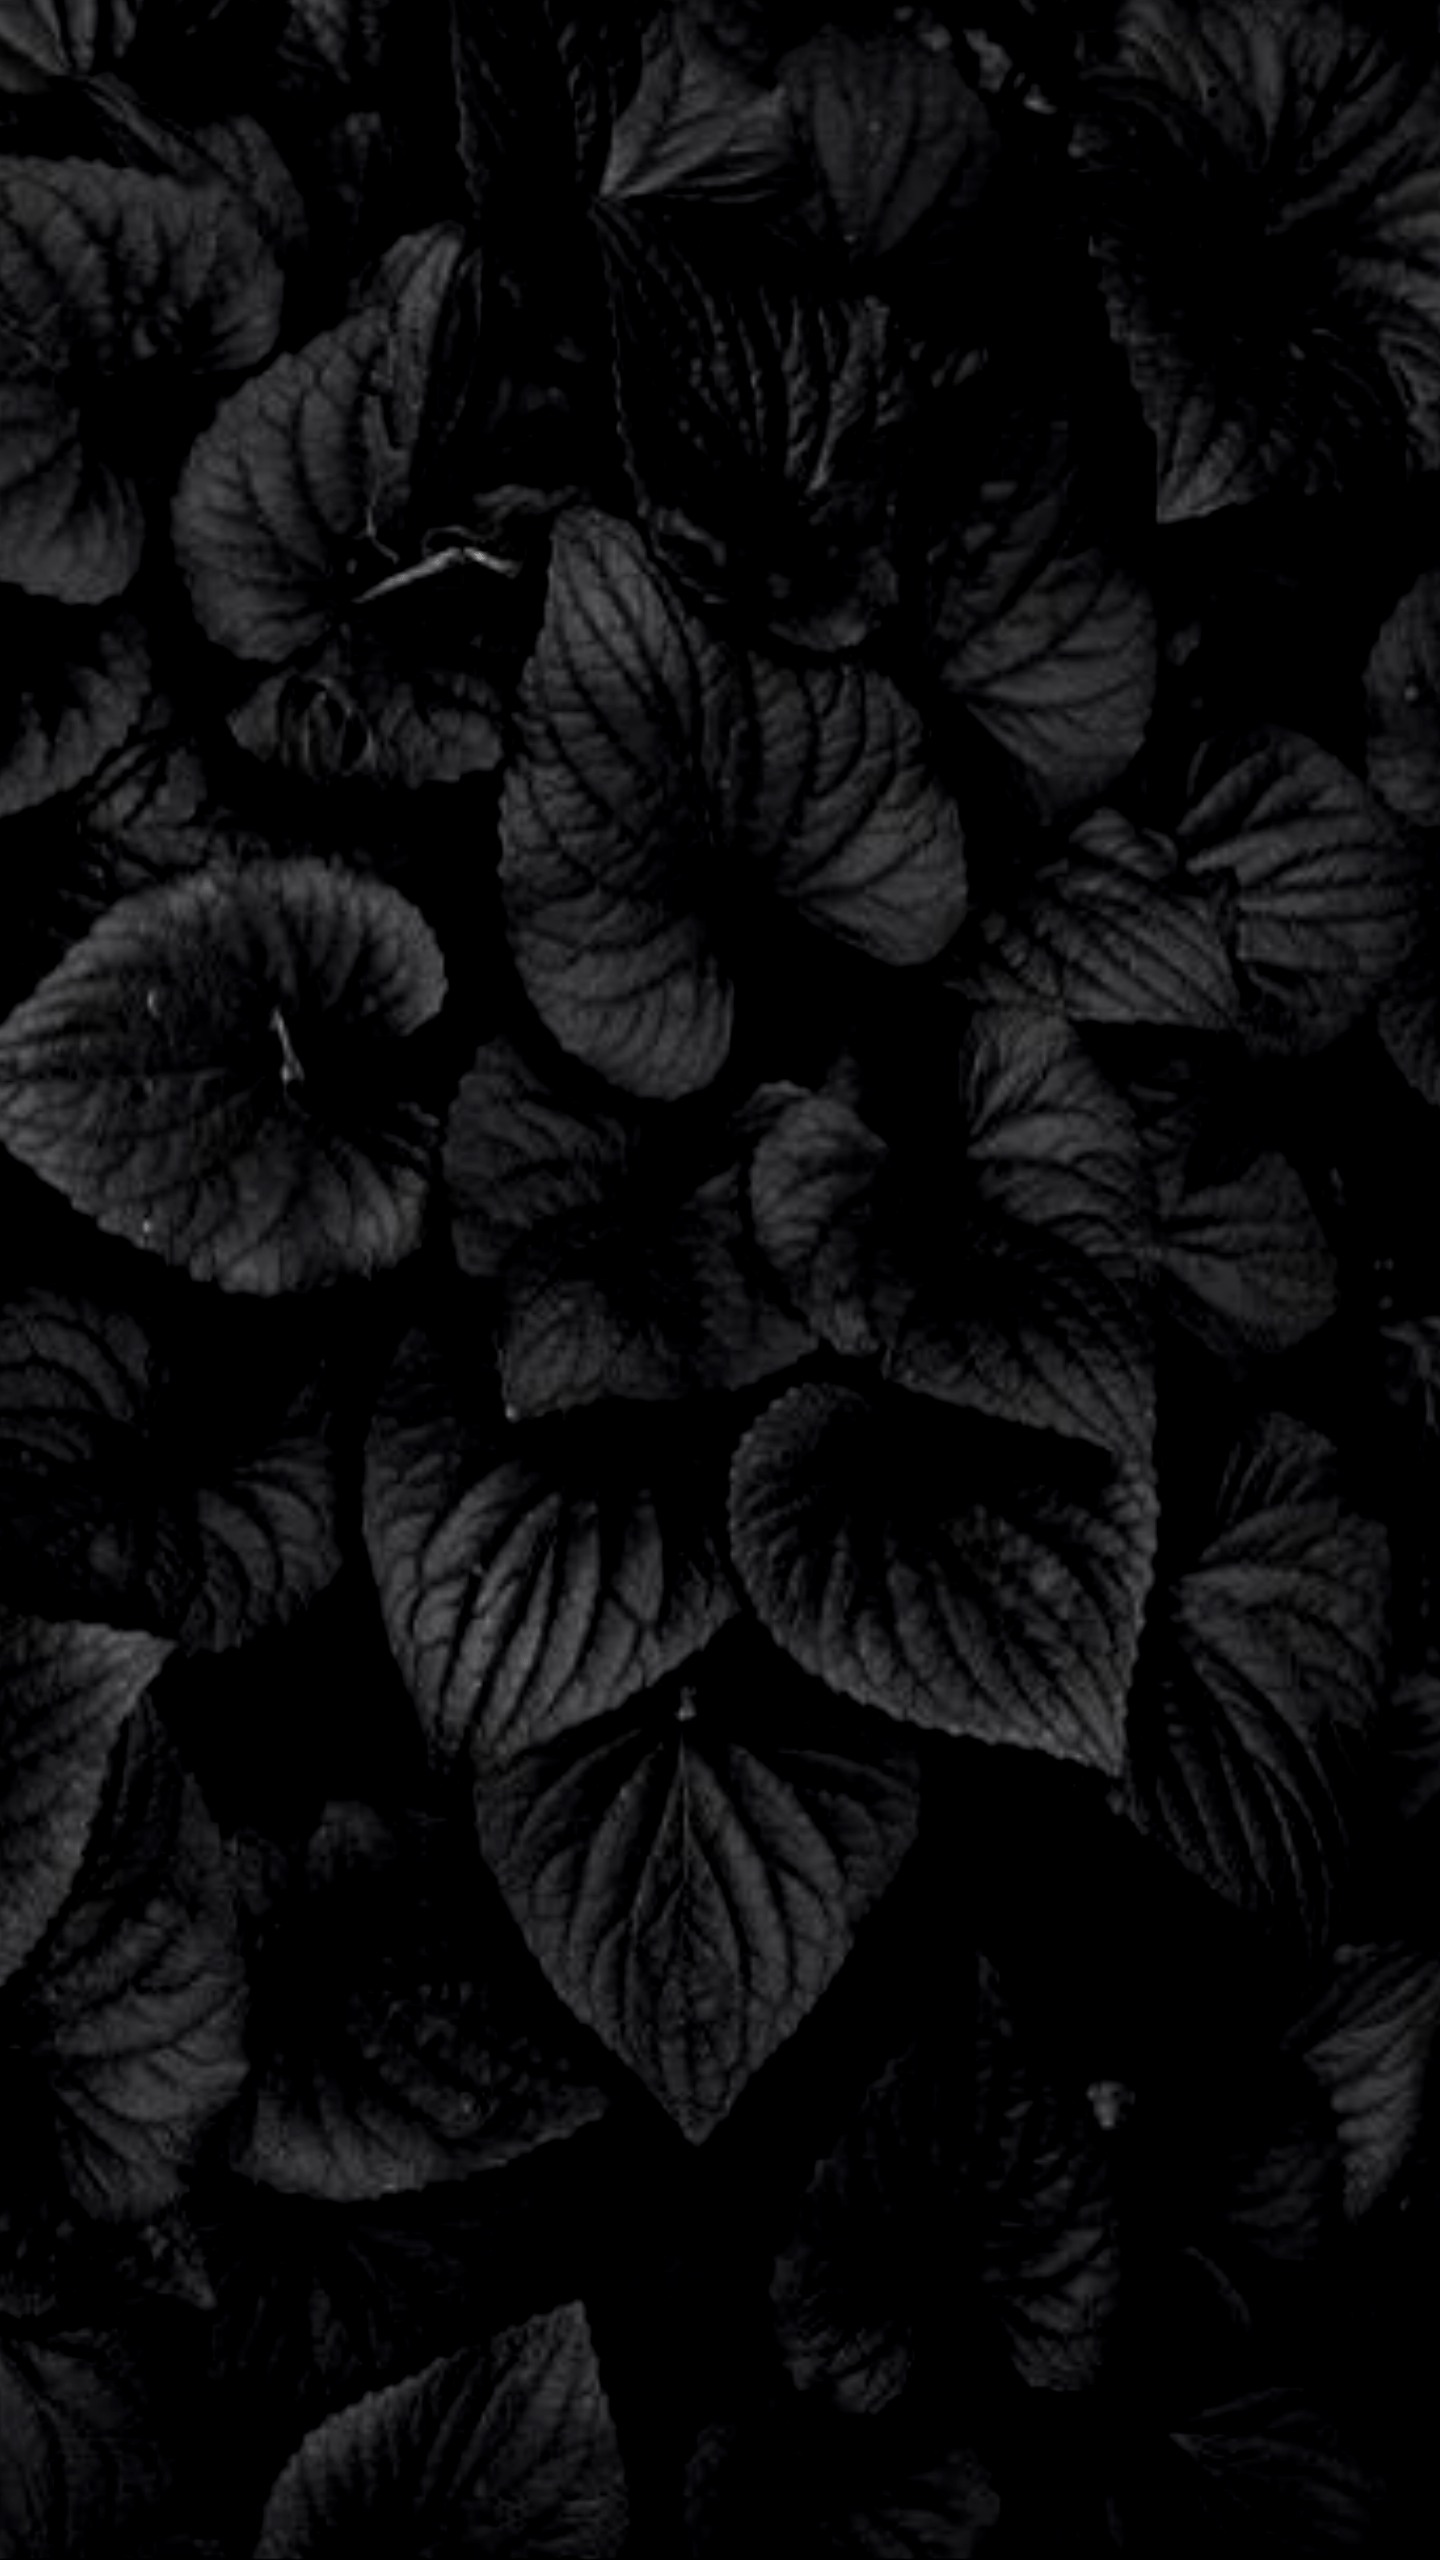 4k Dark Wallpapers Posted By Ethan Peltier